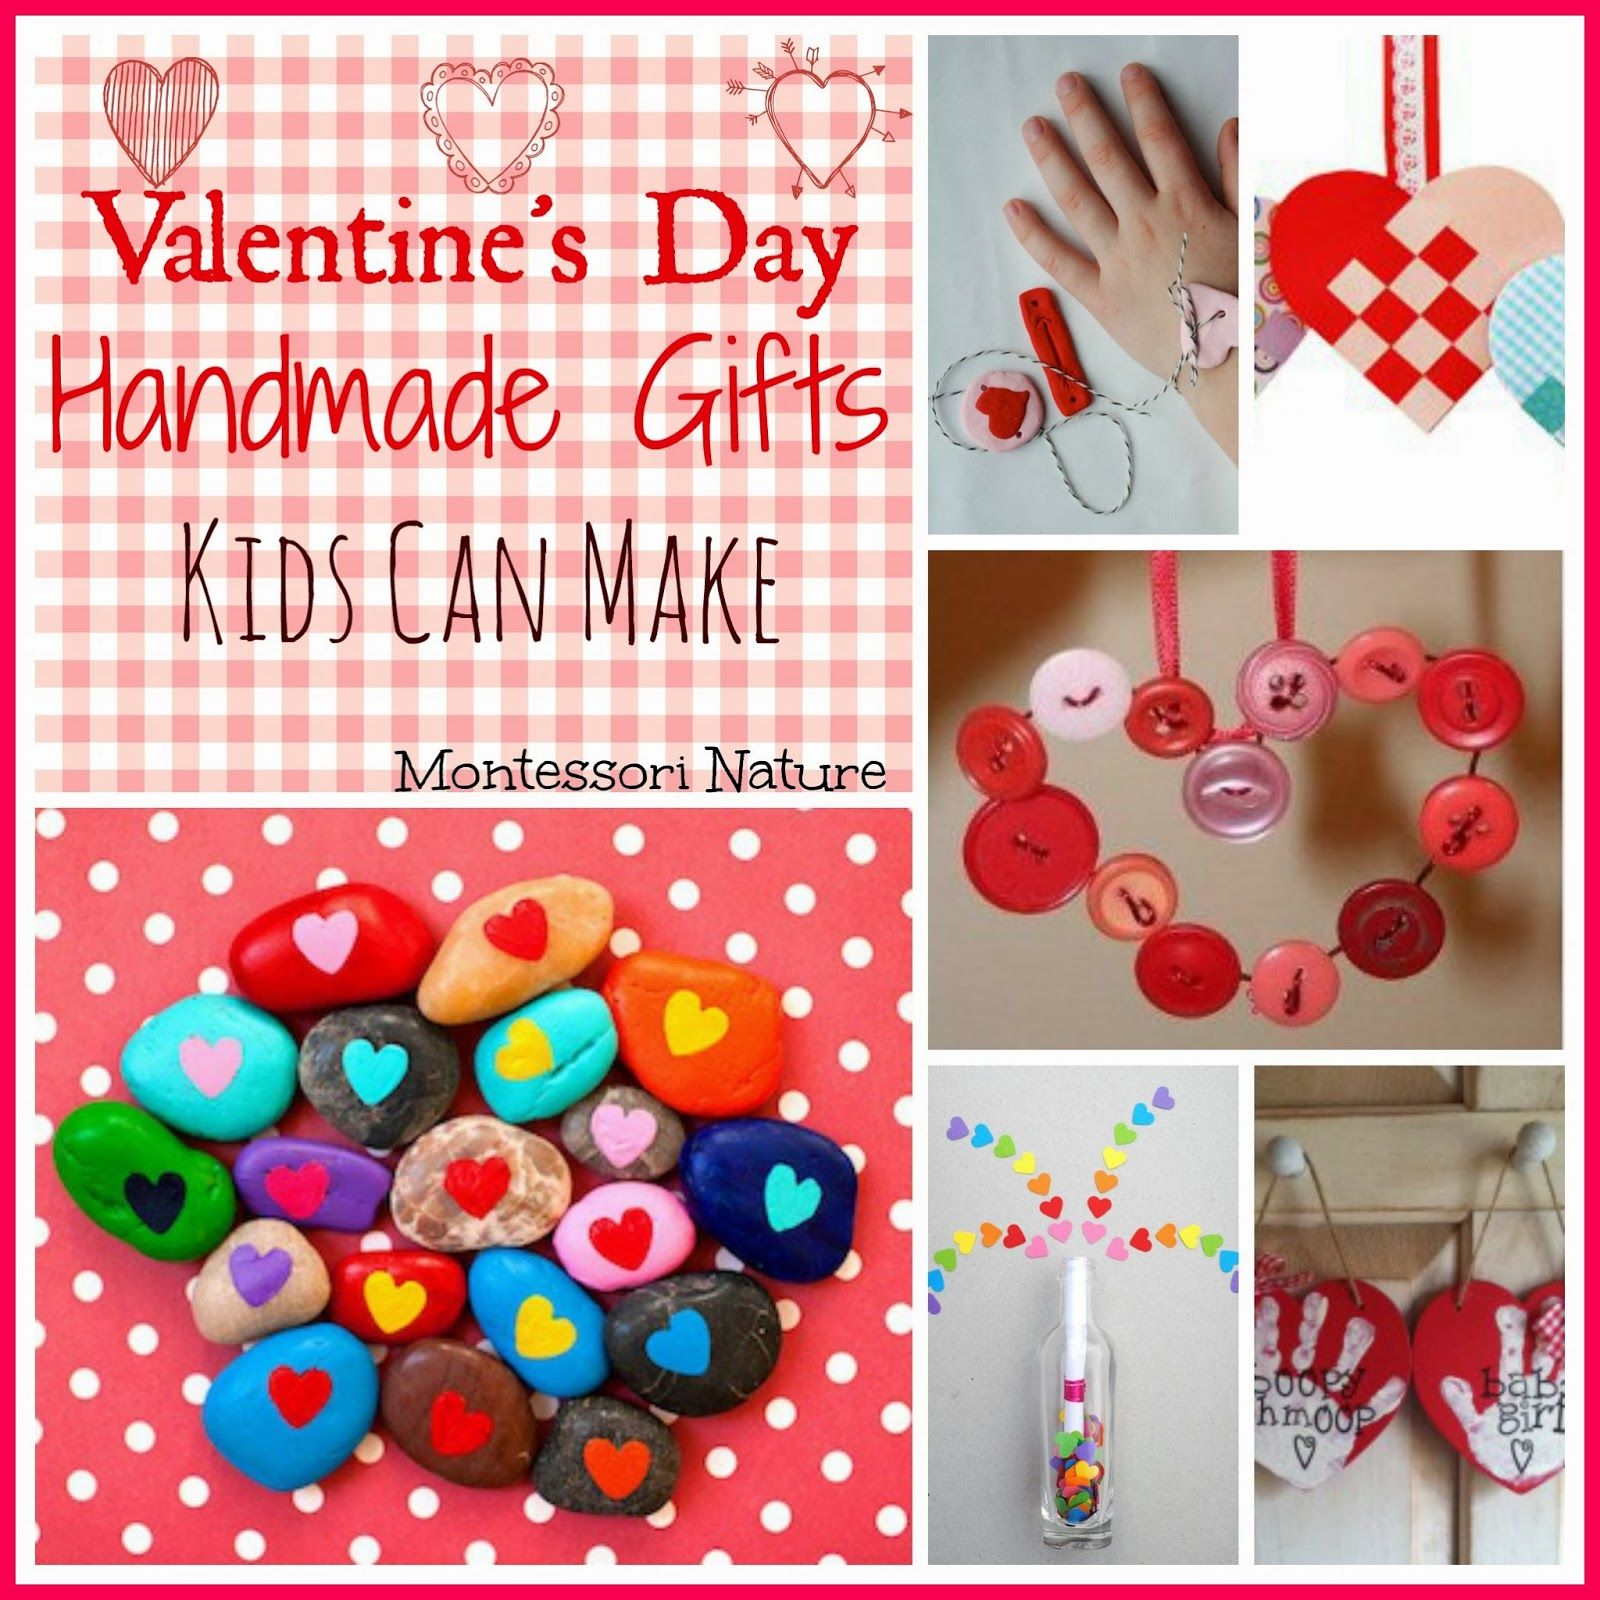 valentines day handmade gifts kids can make montessori nature - Valentine Gifts For Children